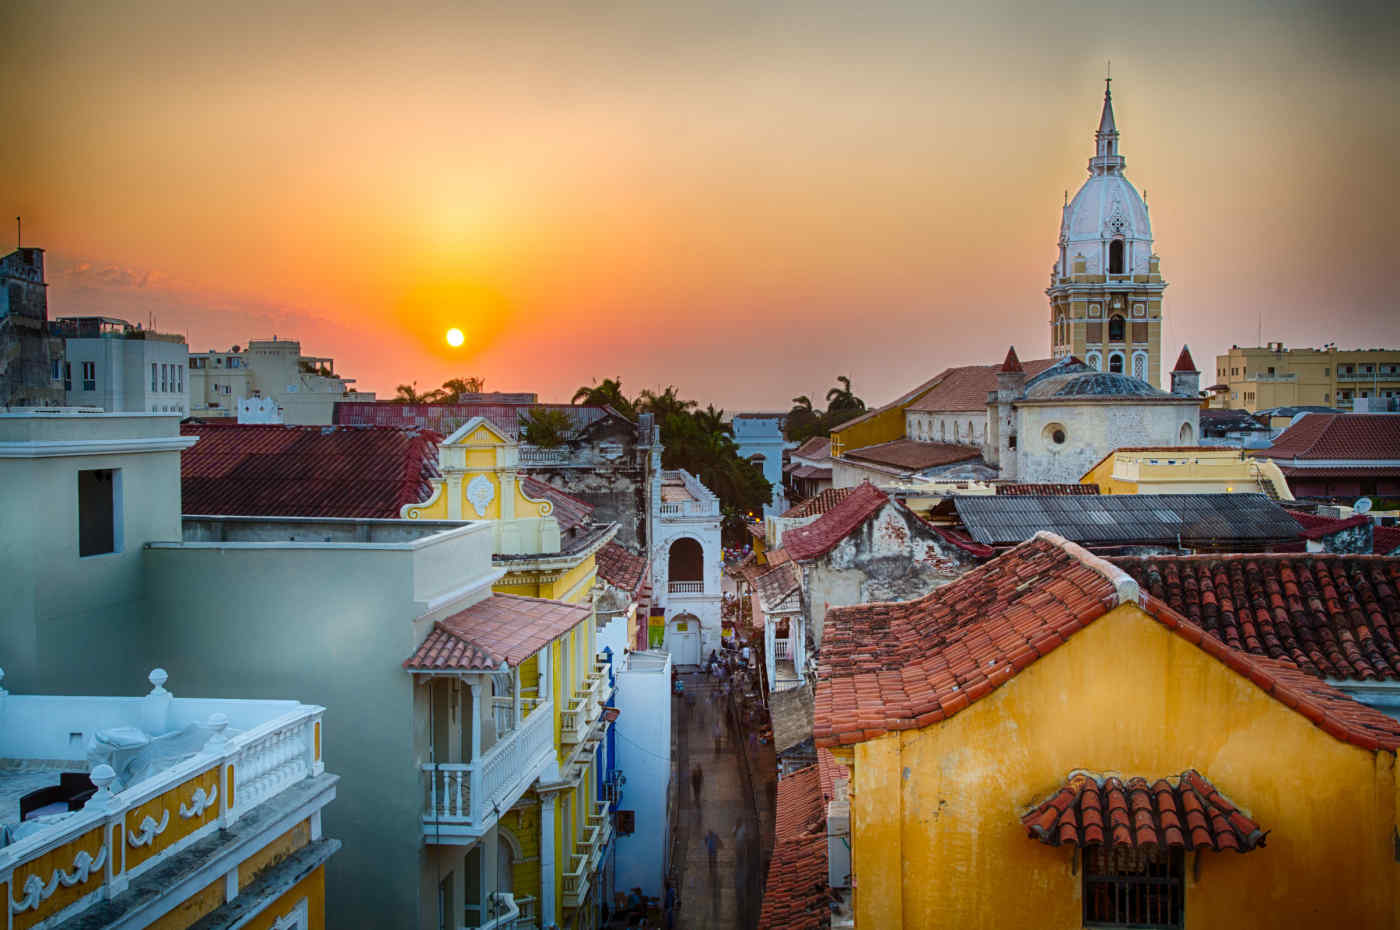 Sunset over Cartagena in Colombia